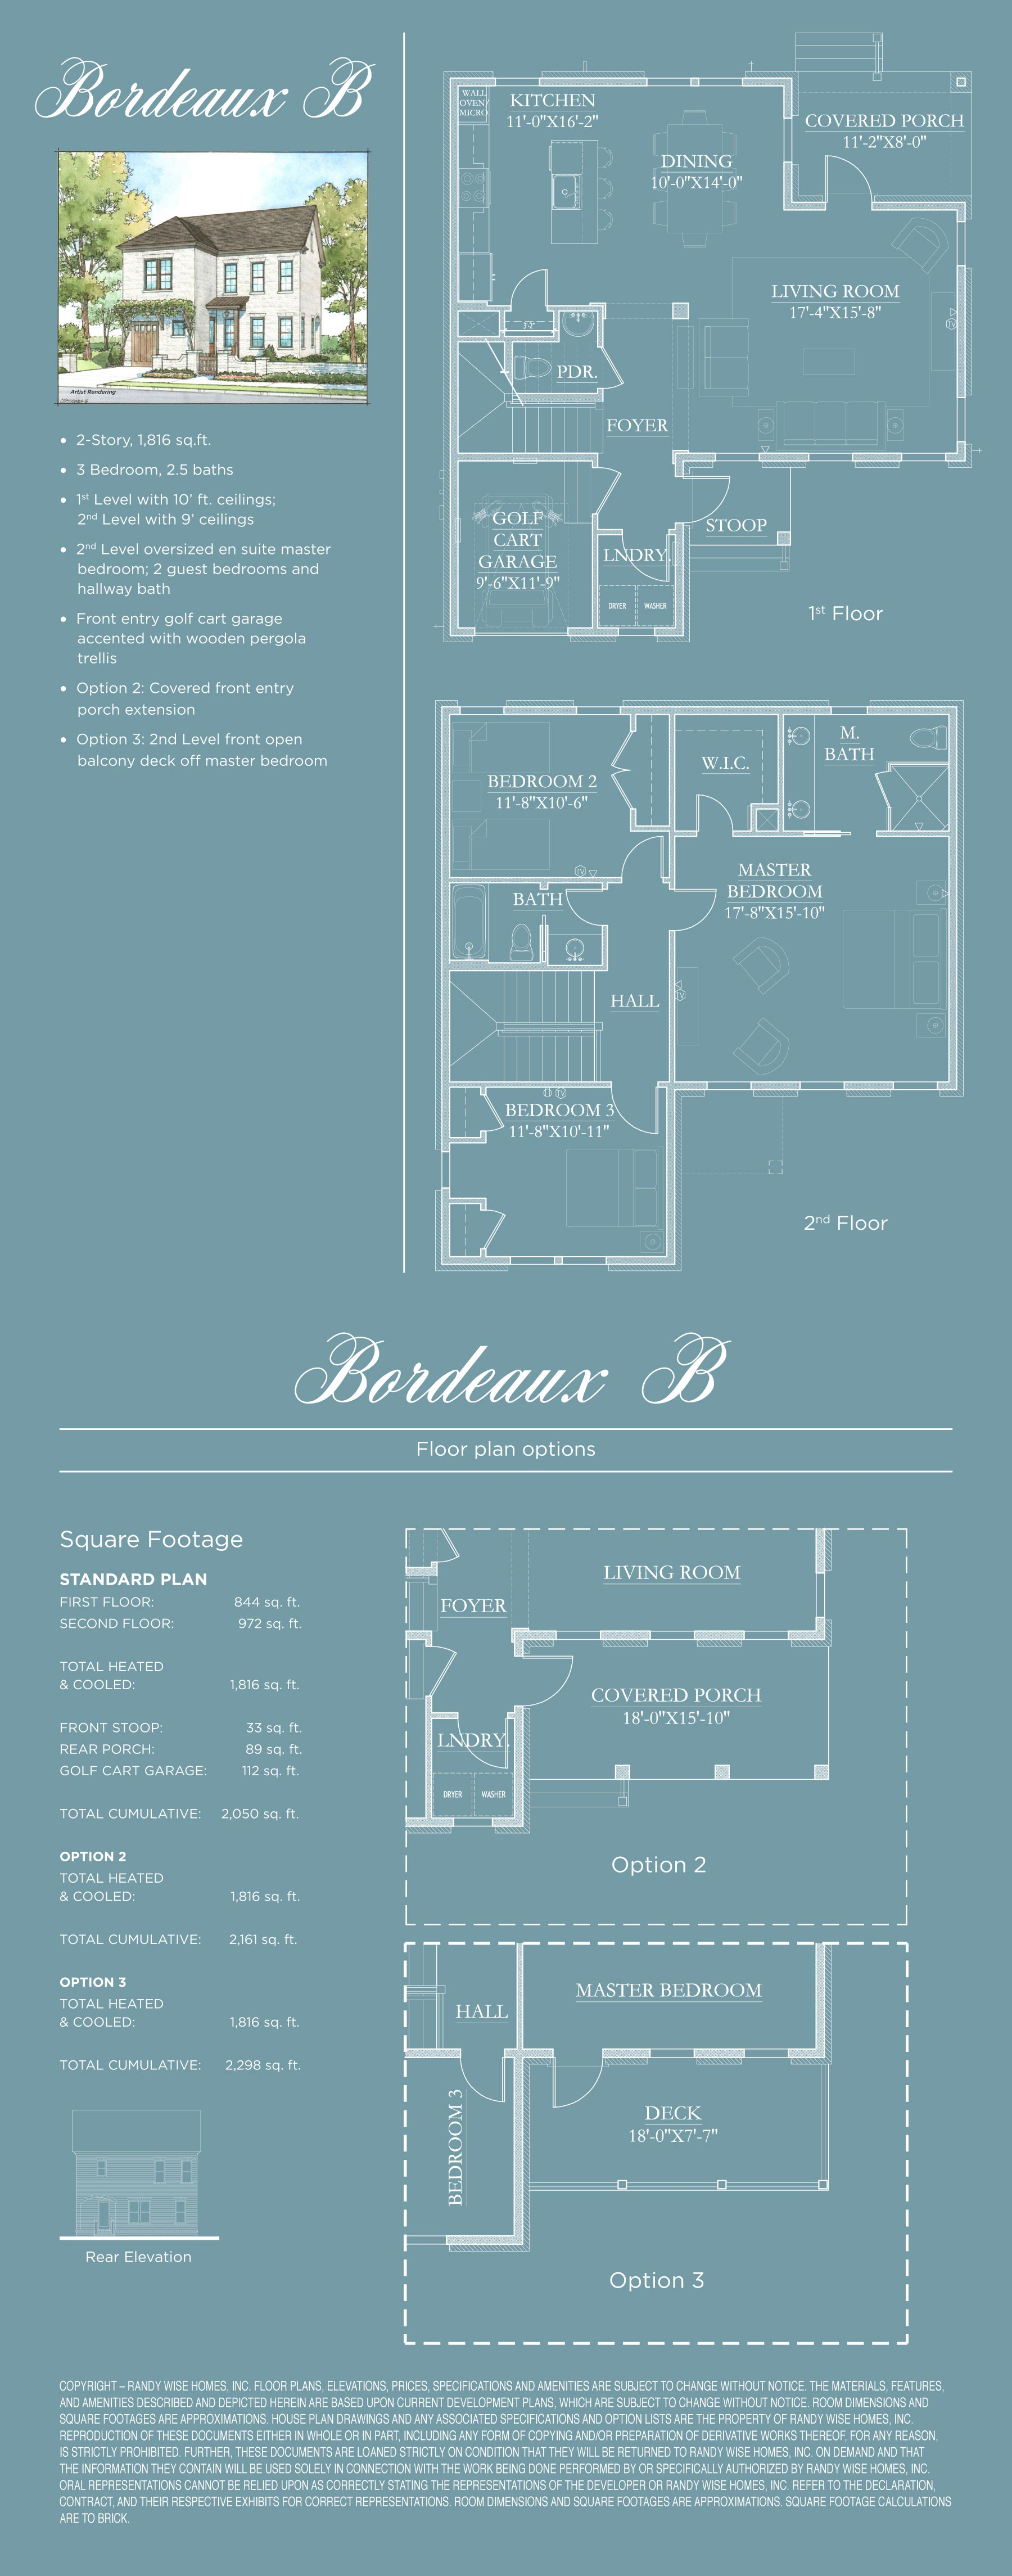 RW-FloorPlans-BordeauxB-Oct2016-3-3-1